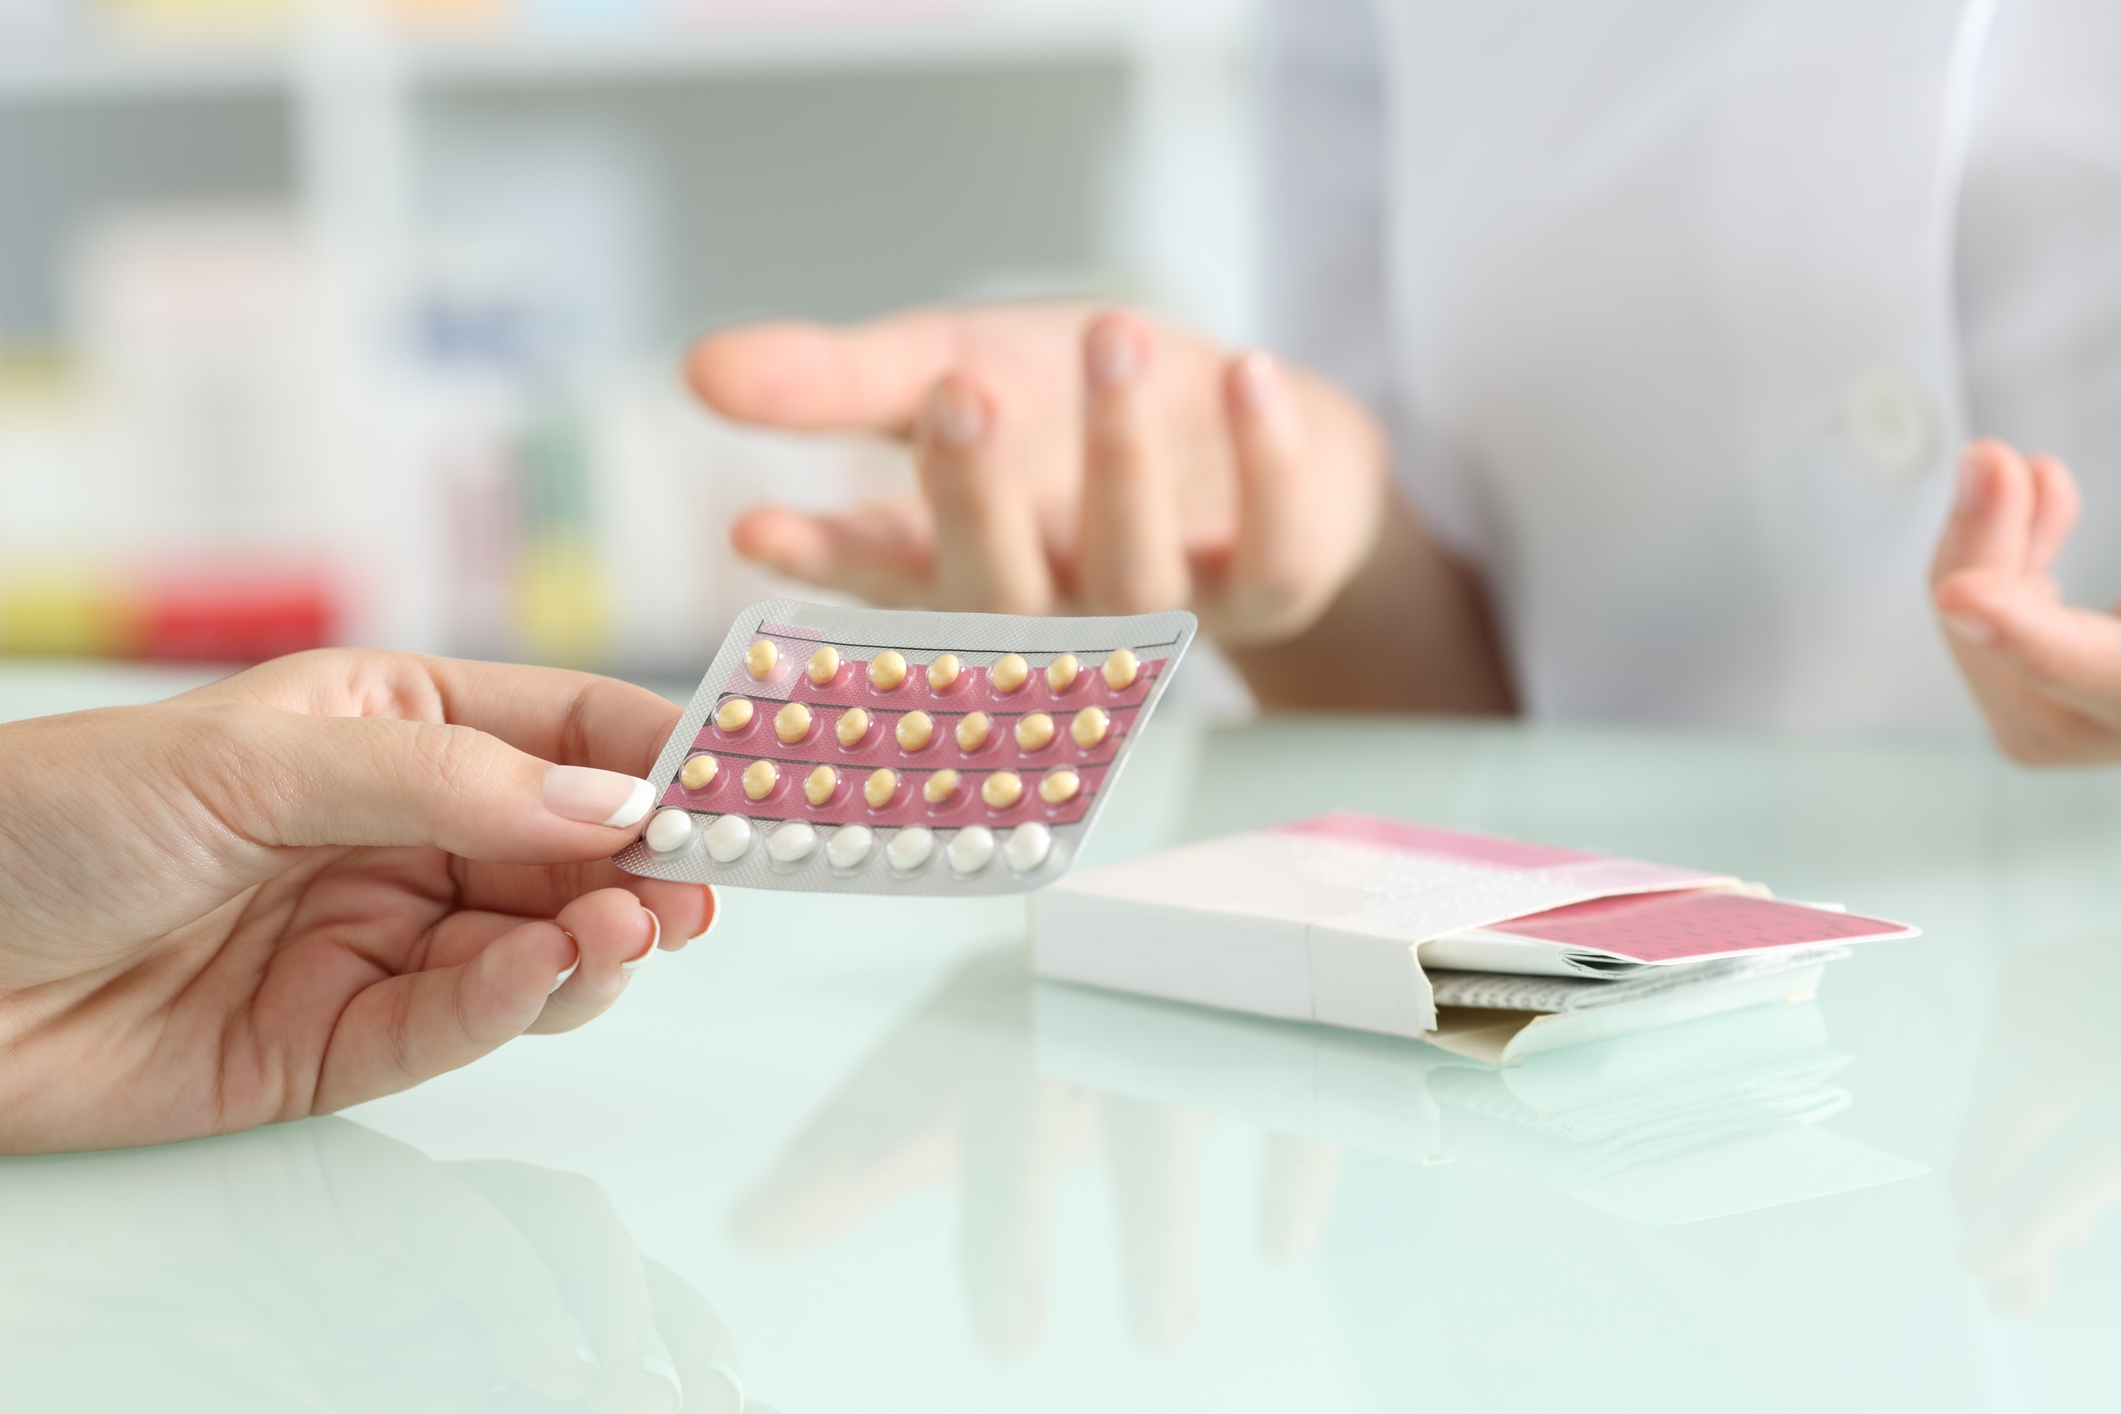 girl-buying-contraceptive-pills-in-a-pharmacy